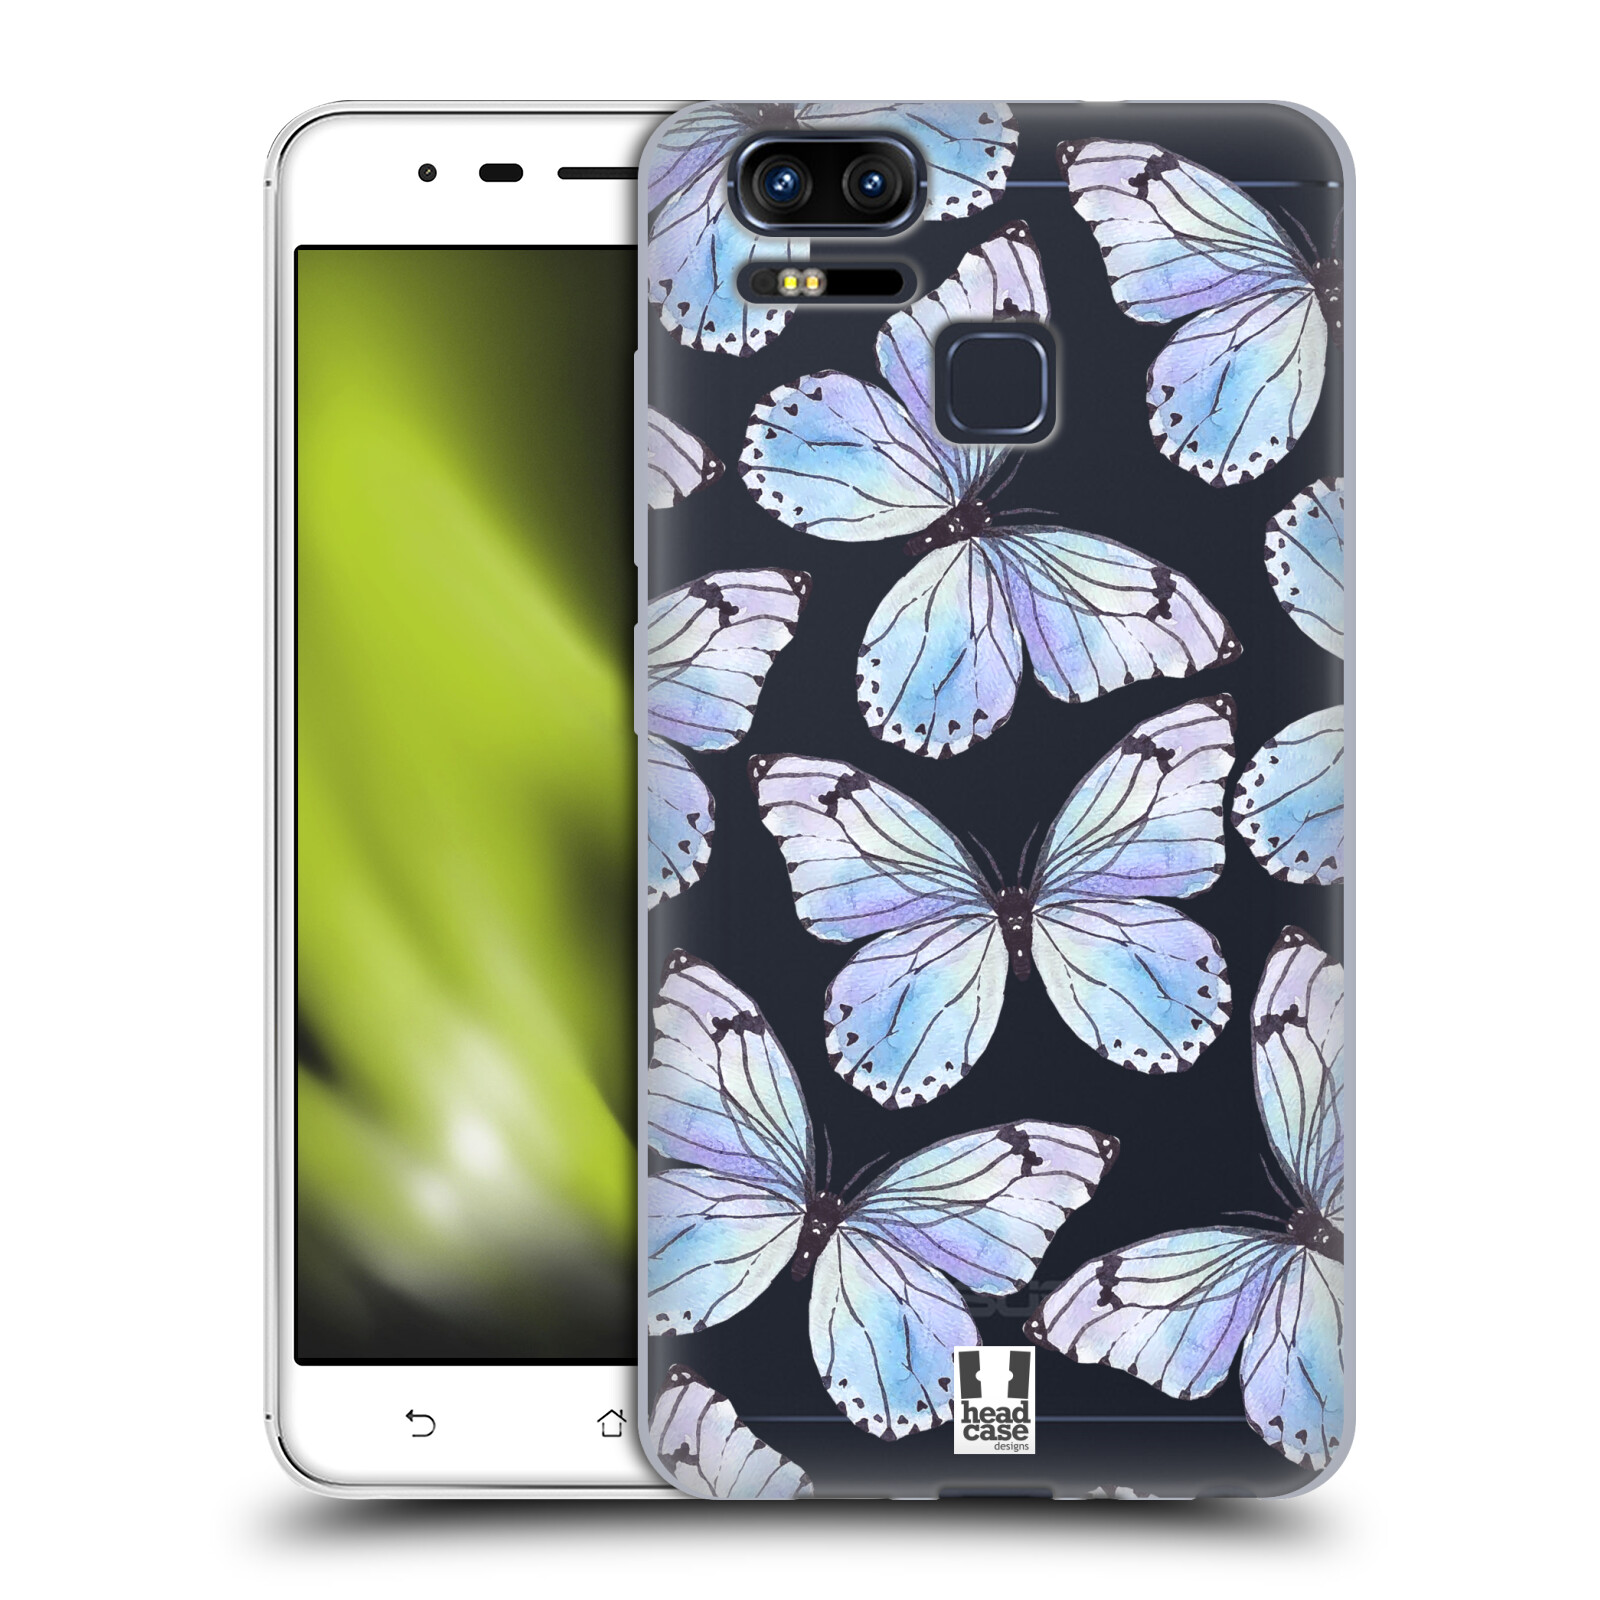 HEAD-CASE-DESIGNS-WATERCOLOUR-INSECTS-GEL-CASE-FOR-ASUS-ZENFONE-3-ZOOM-ZE553KL